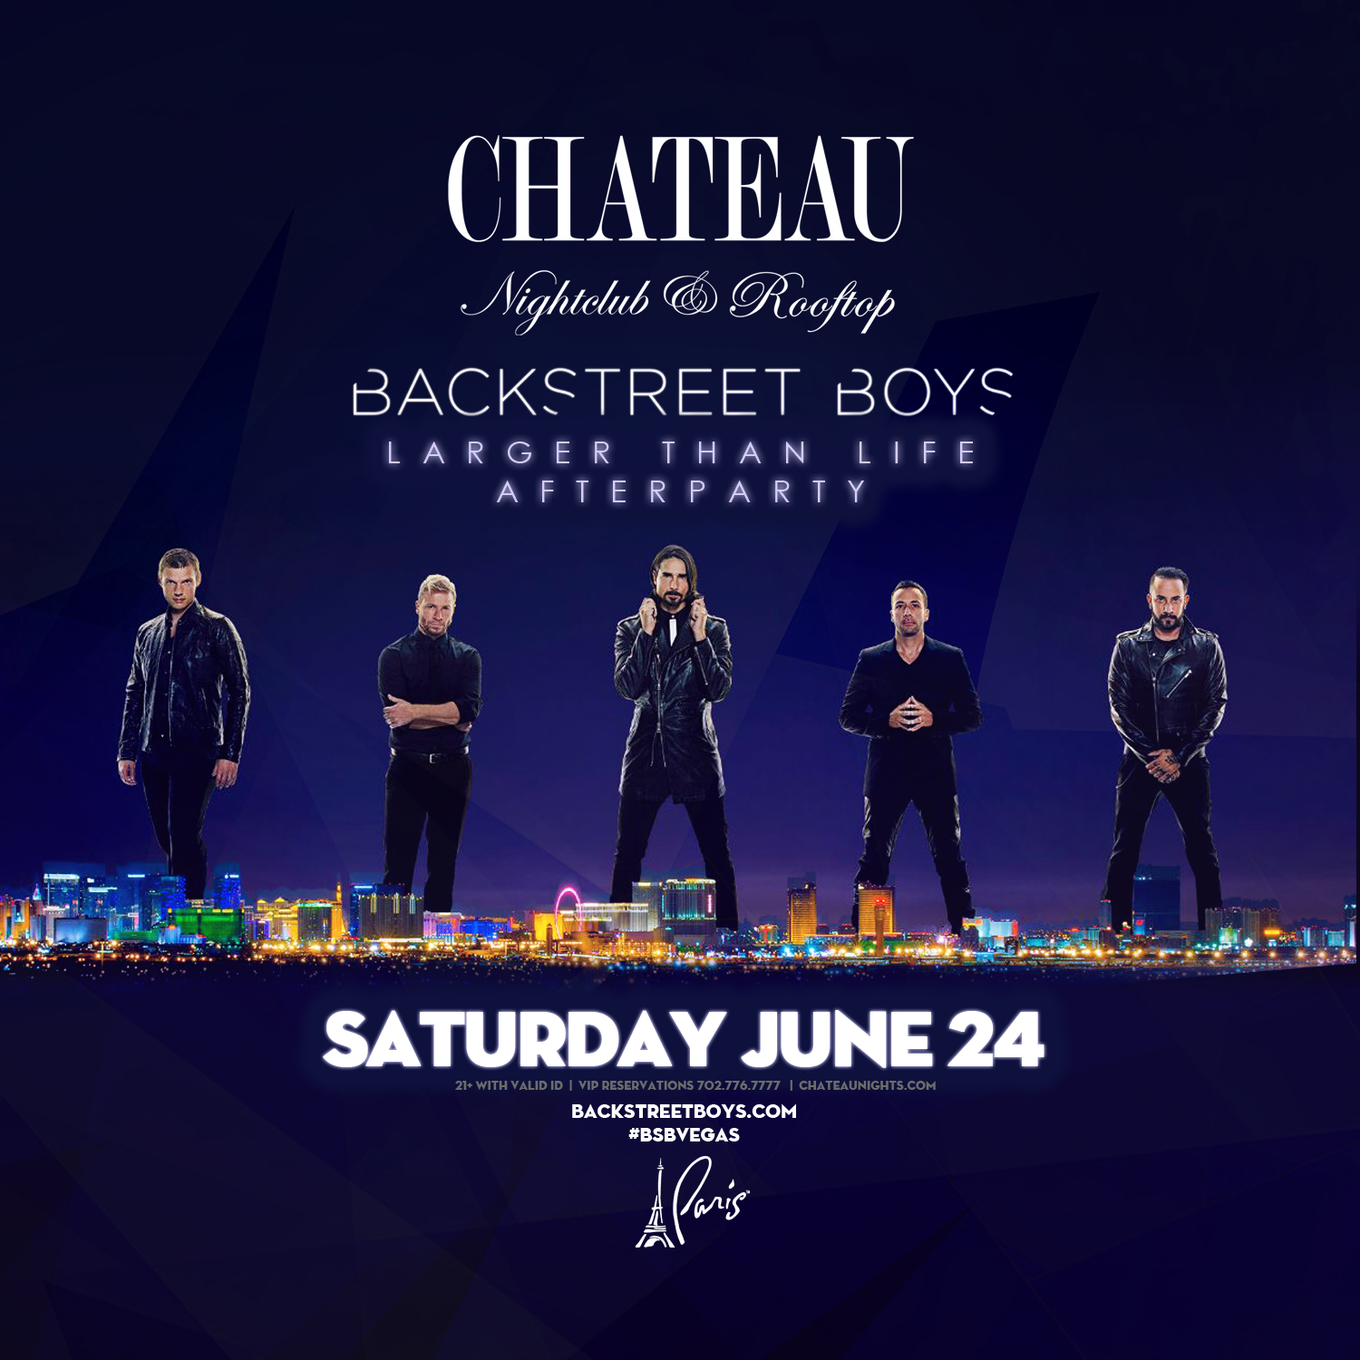 Official Backstreet Boys Afterparty Tickets Chateau